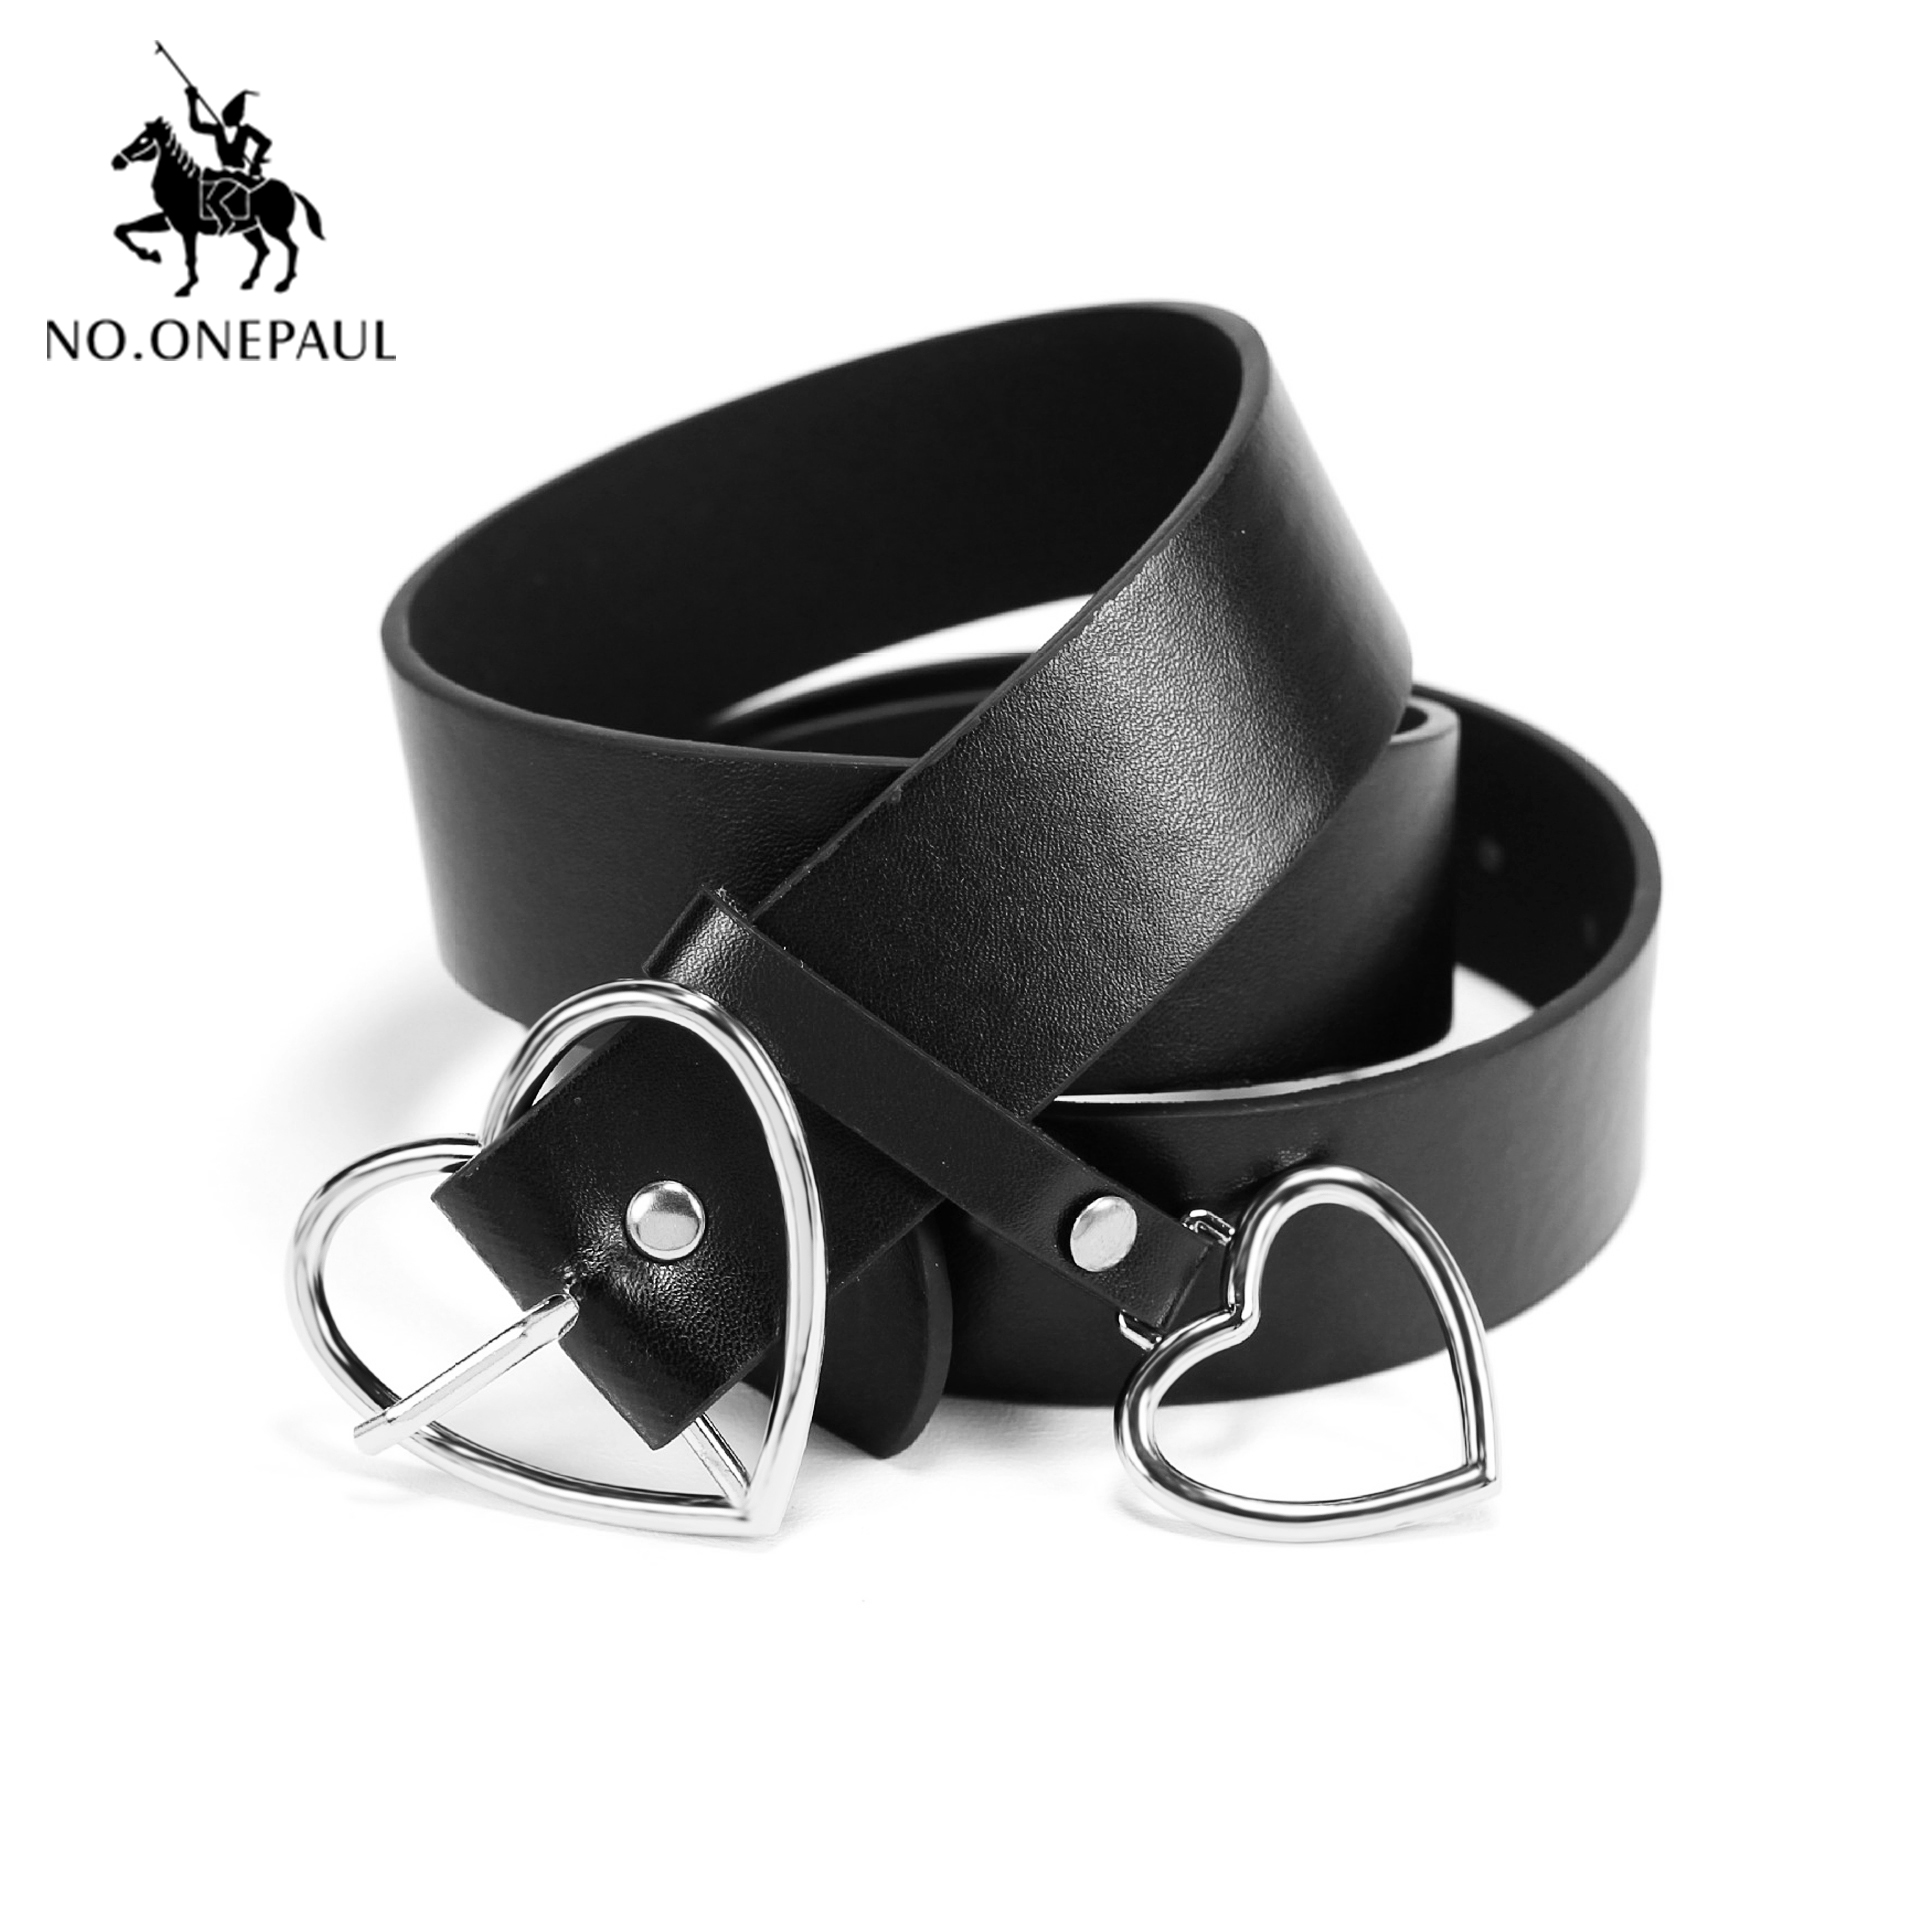 NO.ONEPAUL Genuine Leather Ladies High Quality Alloy Love Pin Buckle Fashion Retro Belt Dress Jeans Decorative Ladies Cute Belts